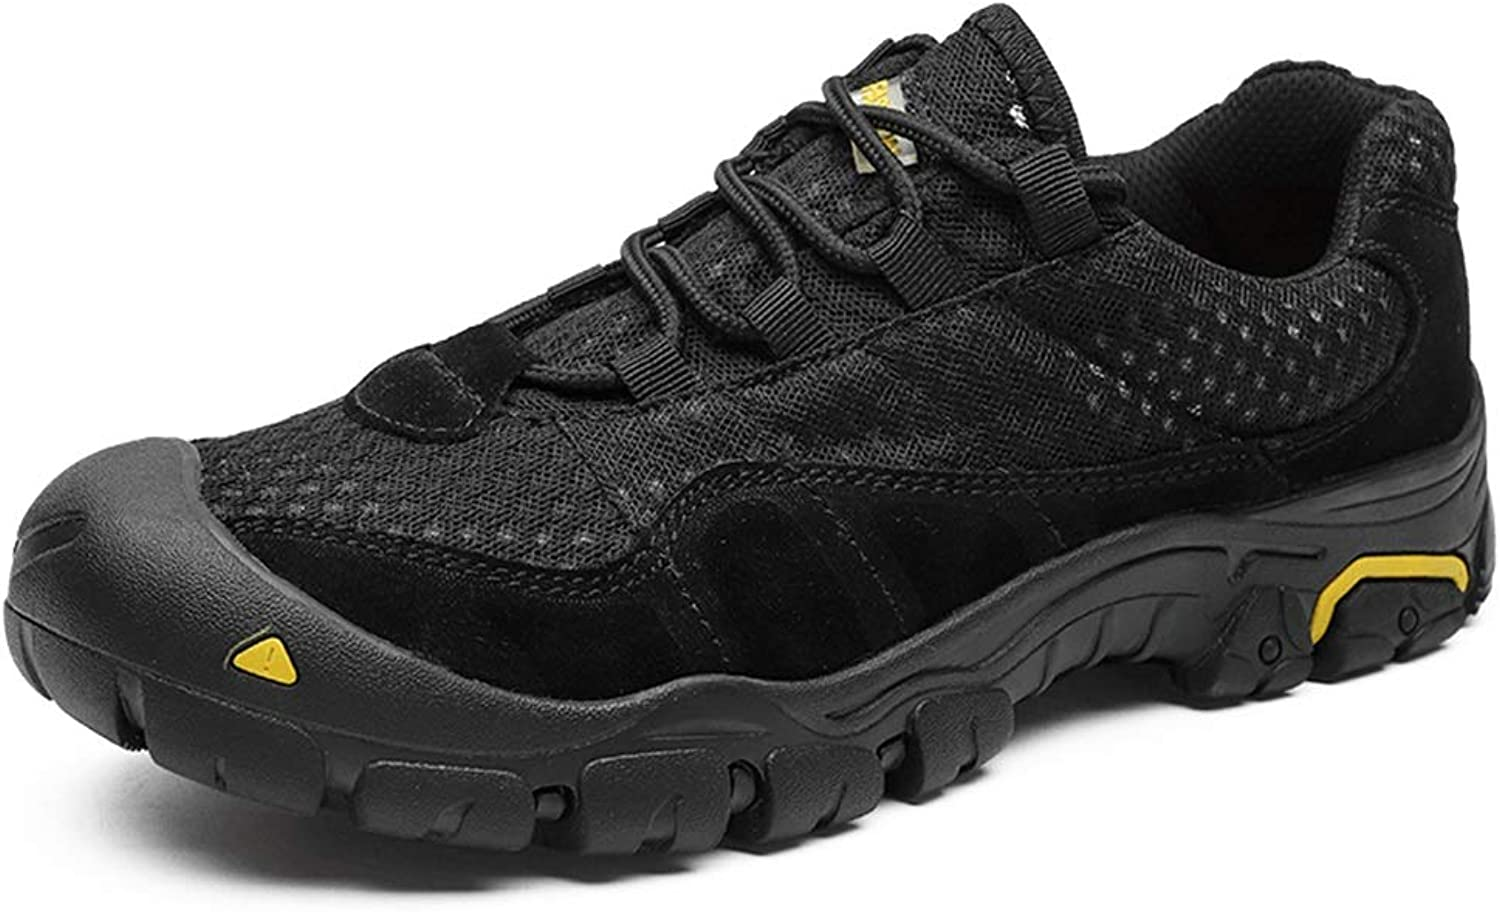 Easy Go Shopping Athletic shoes for Men Sports shoes Lace Up Style Mesh and Suede Leather Anti-Collision Toe Outdoor Cricket shoes